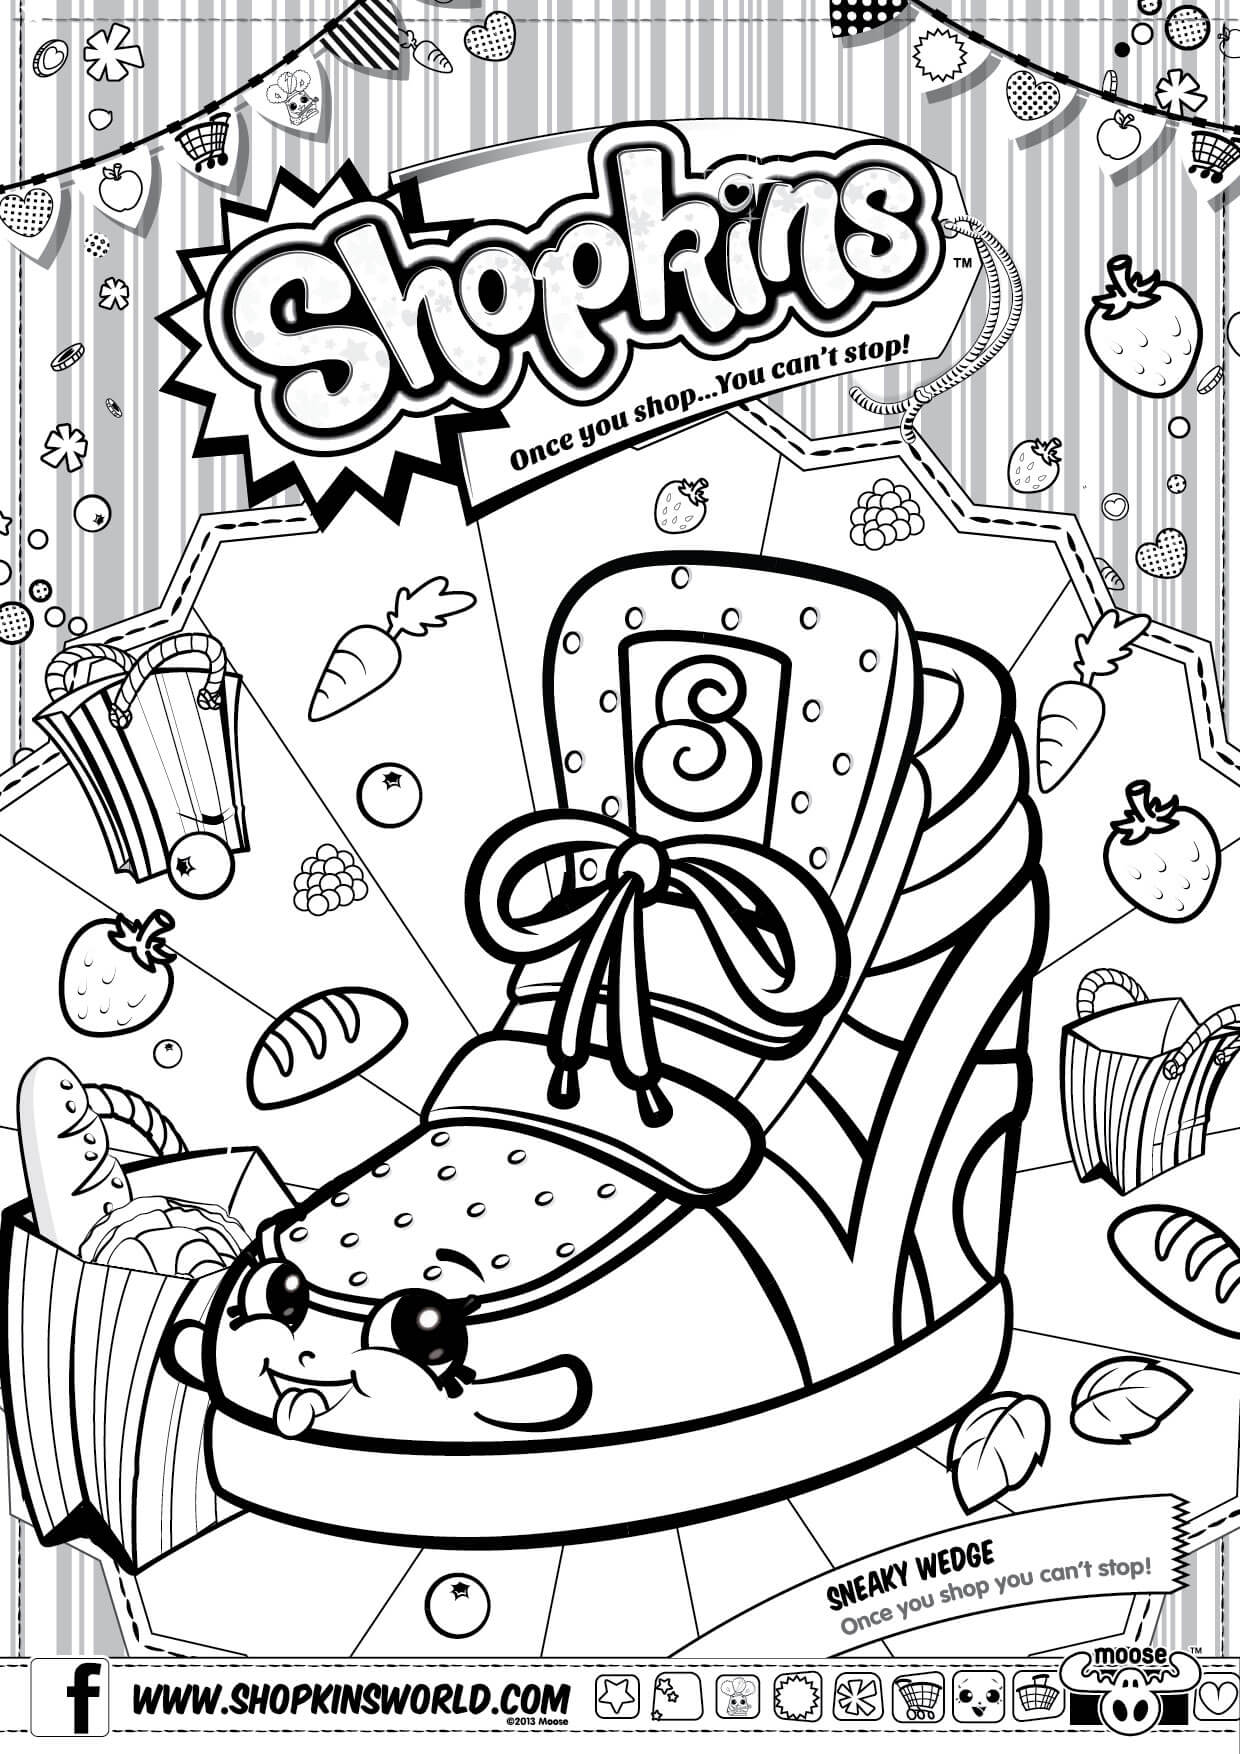 shopkins coloring pages 1